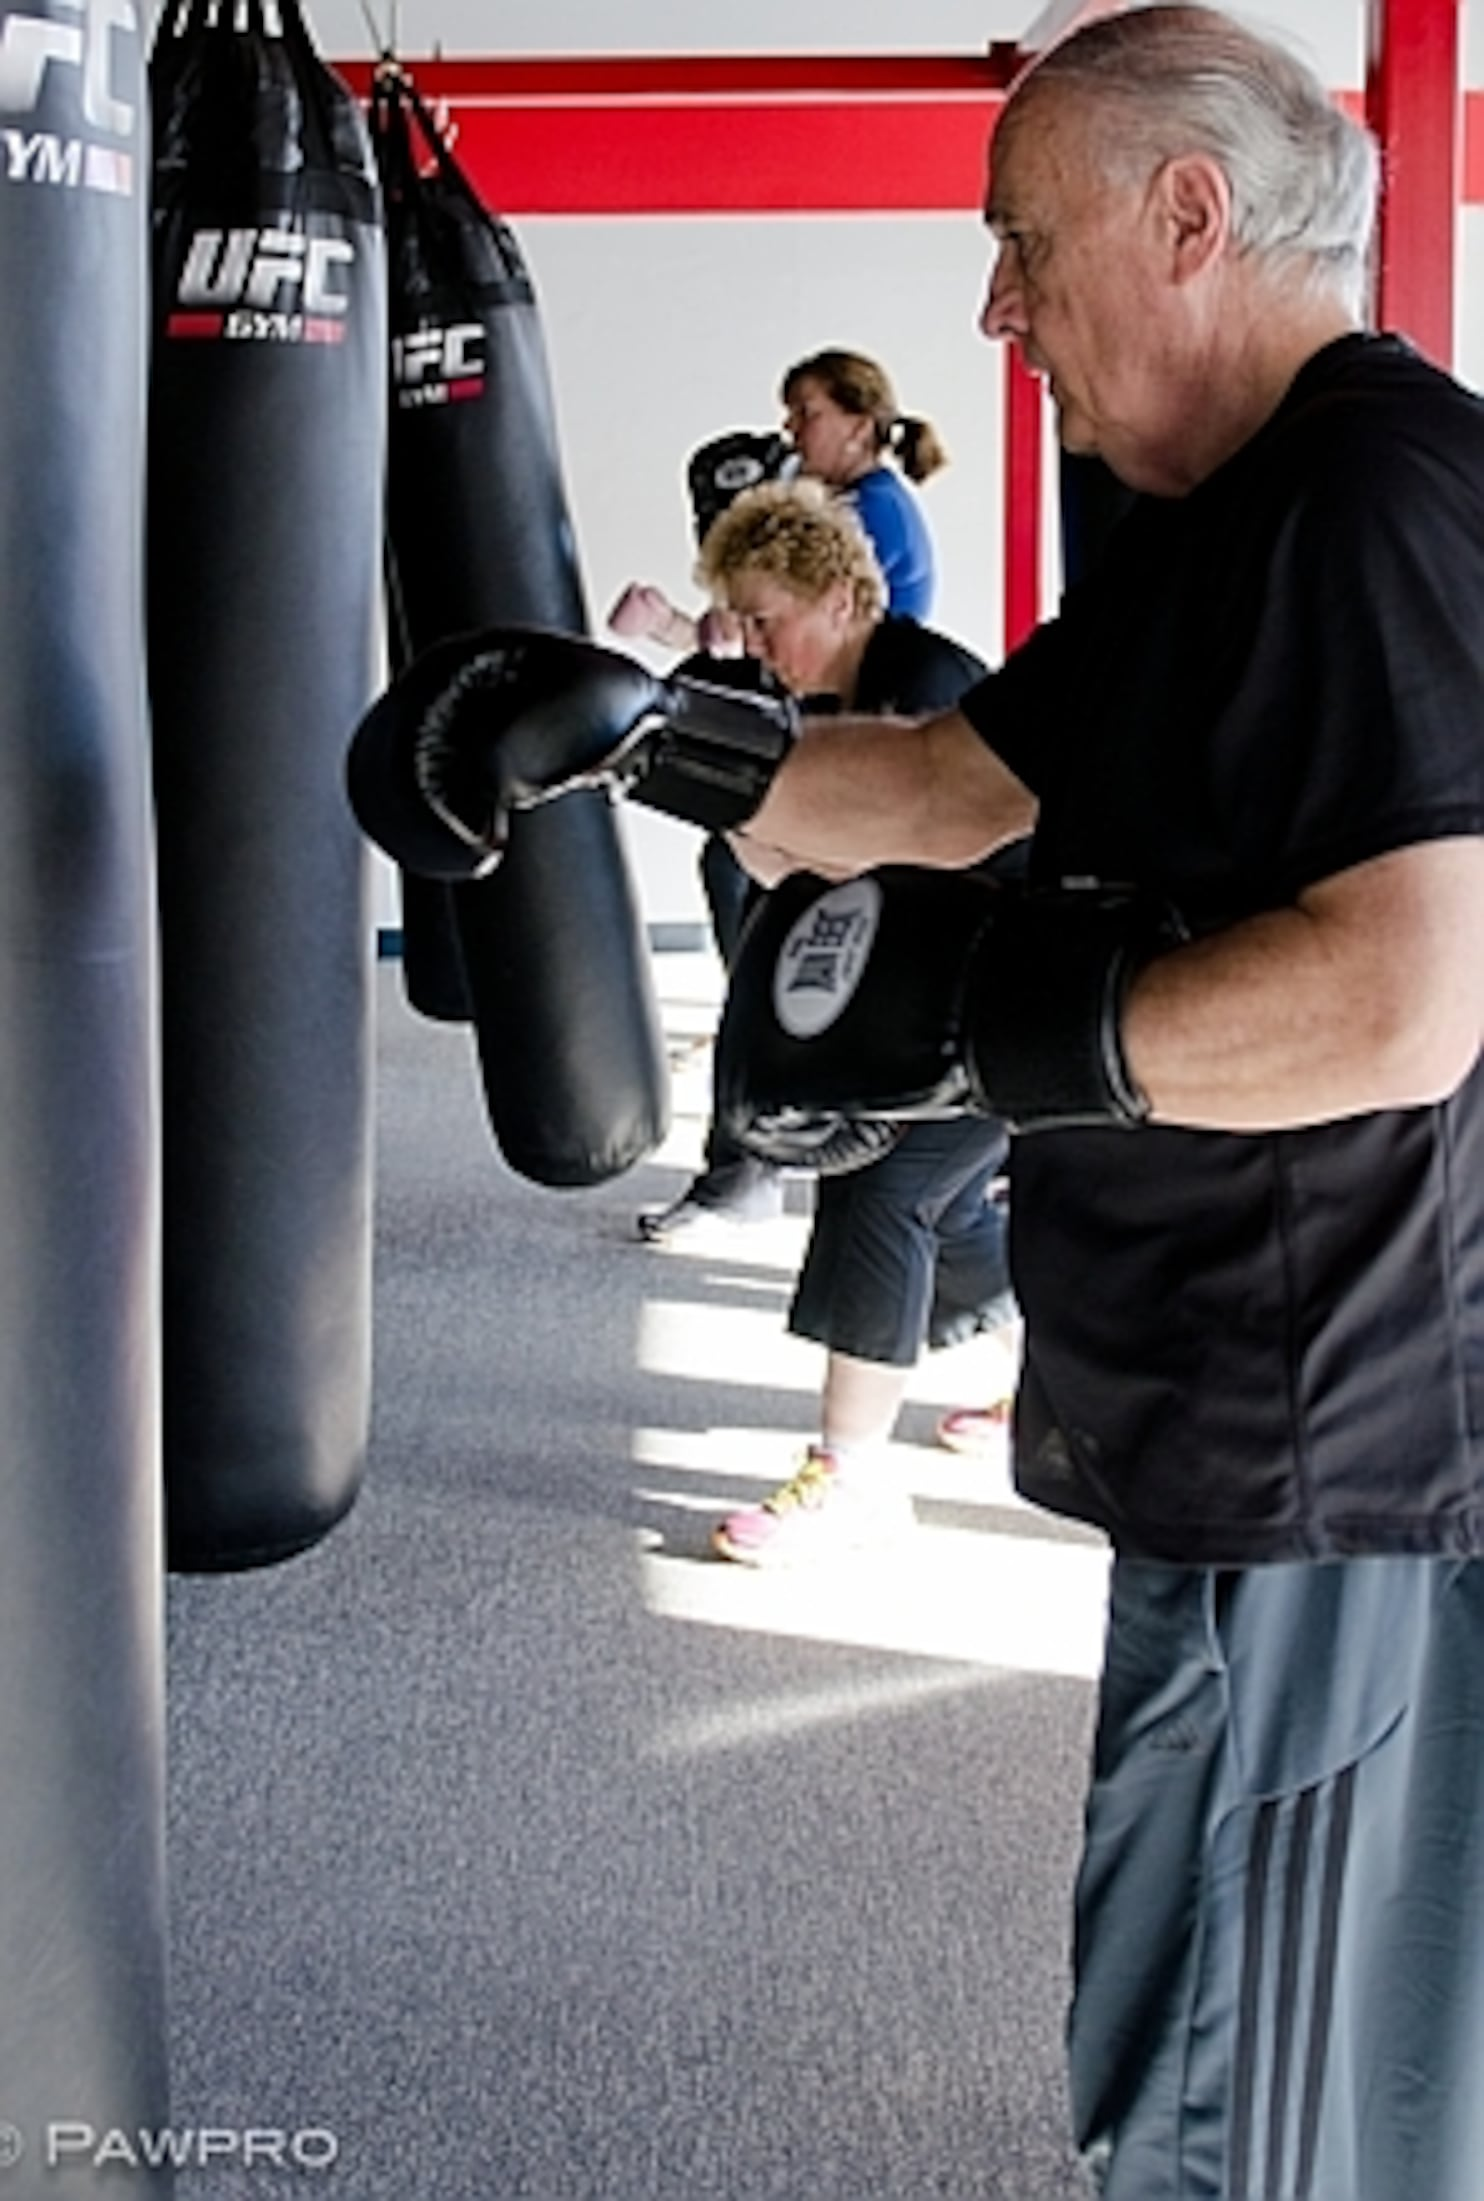 Personal Training For Seniors Doesn T Just Mean An Easier